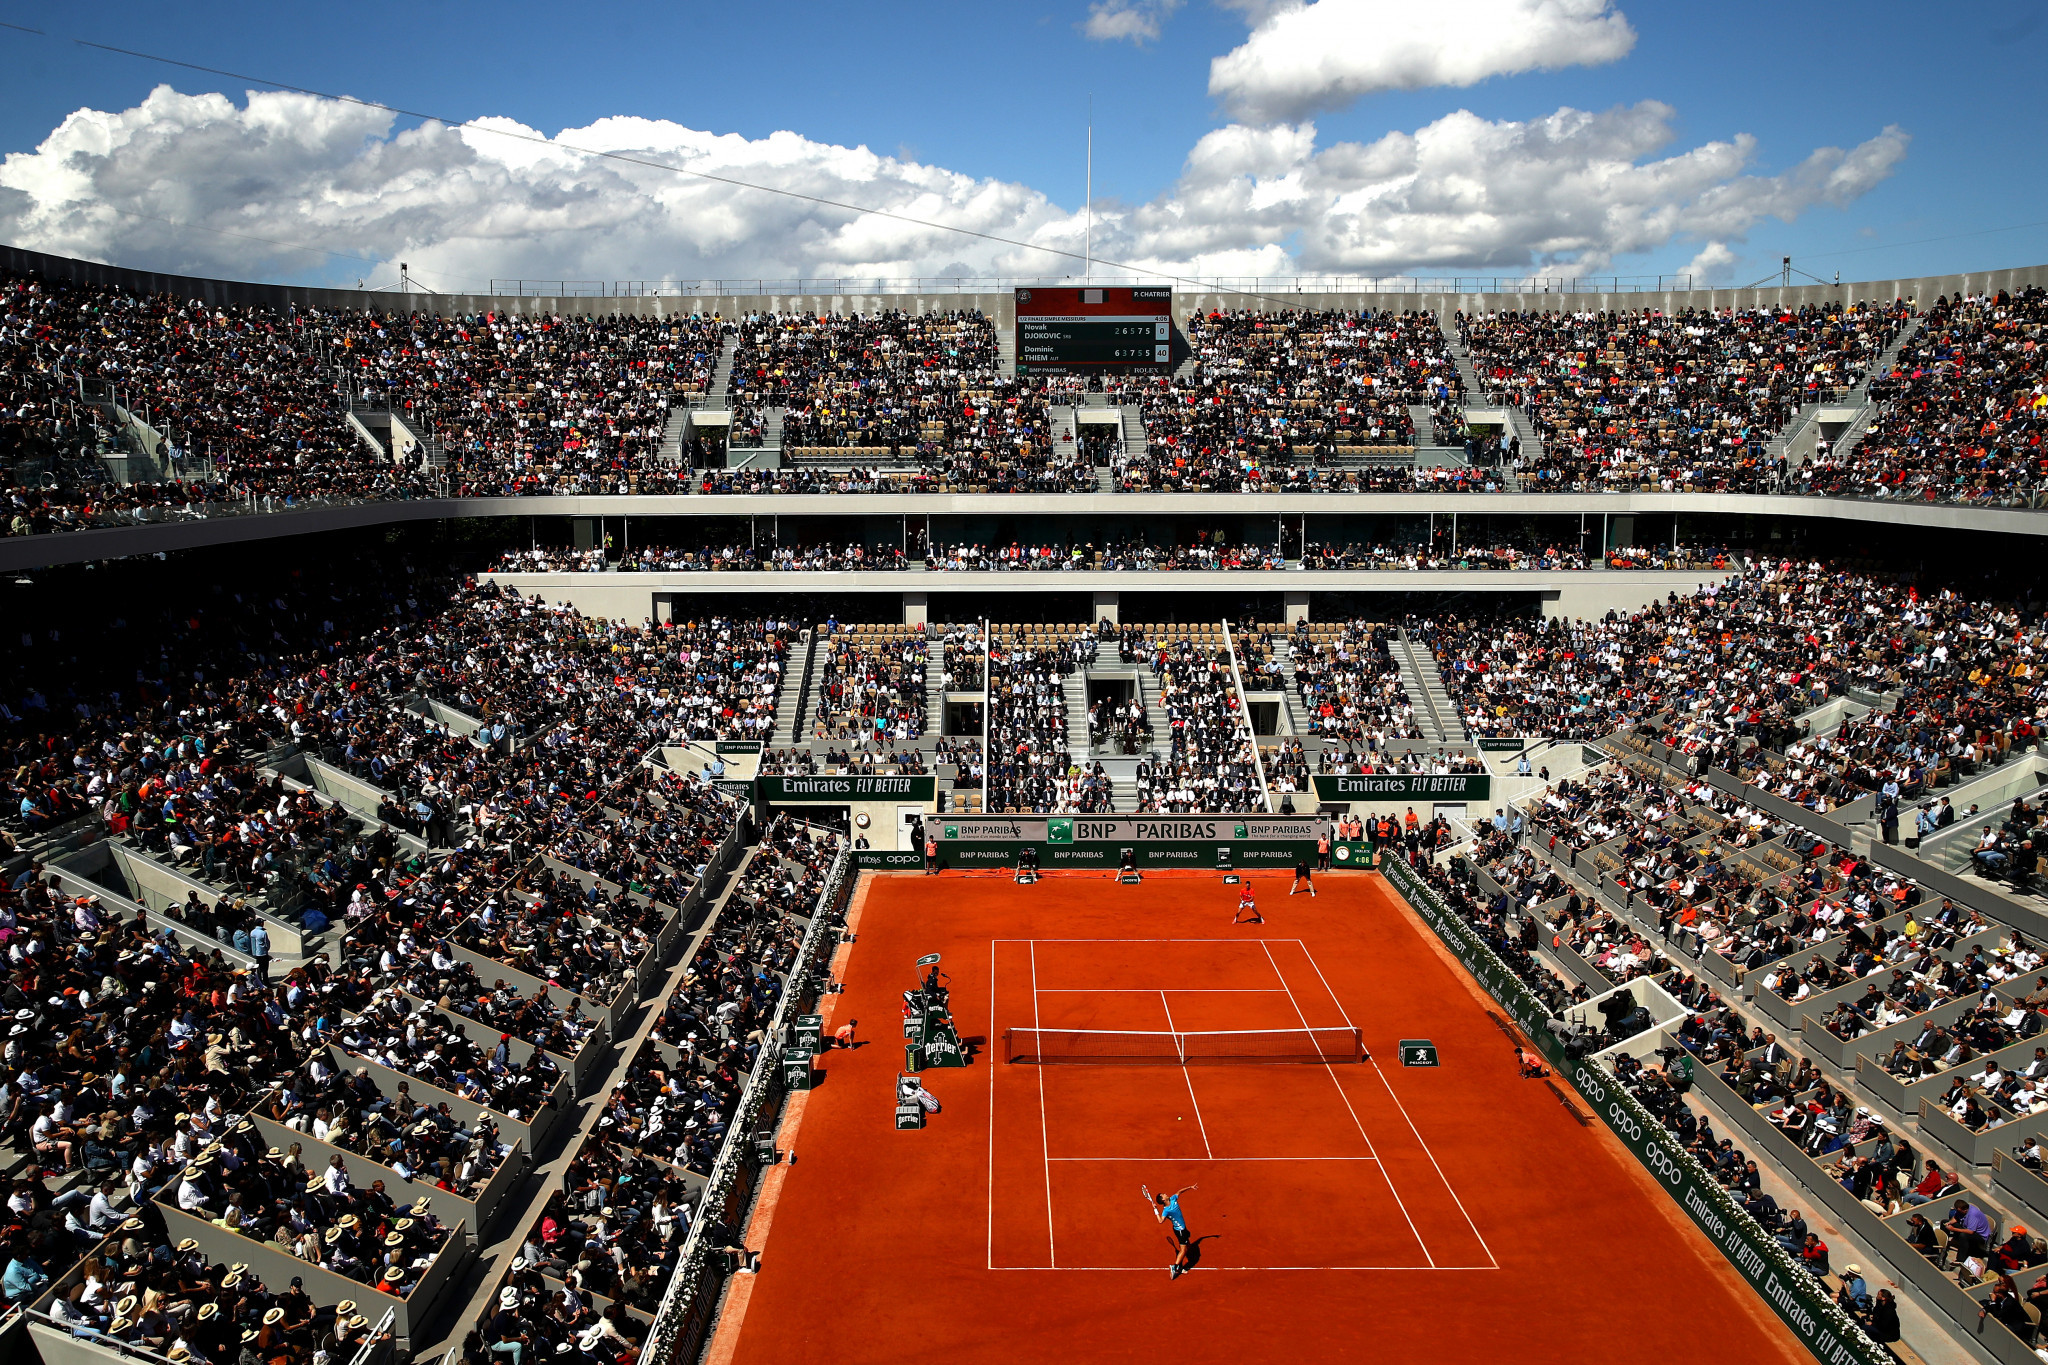 French Open pushed back by a week in hope of more fans